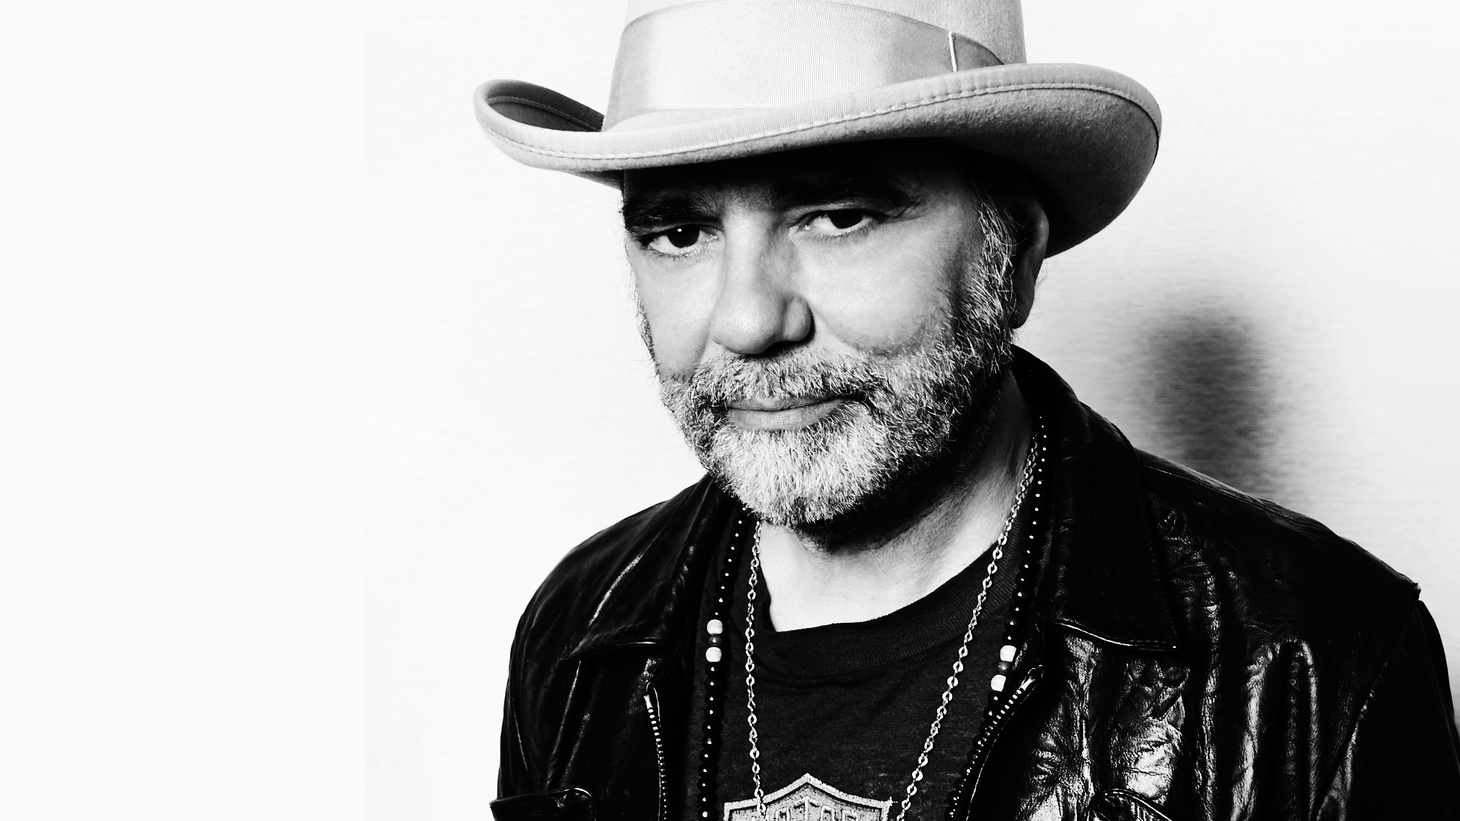 Iconic producer Daniel Lanois has an extraordinary musical palette, having worked with everyone from Brian Eno to U2.